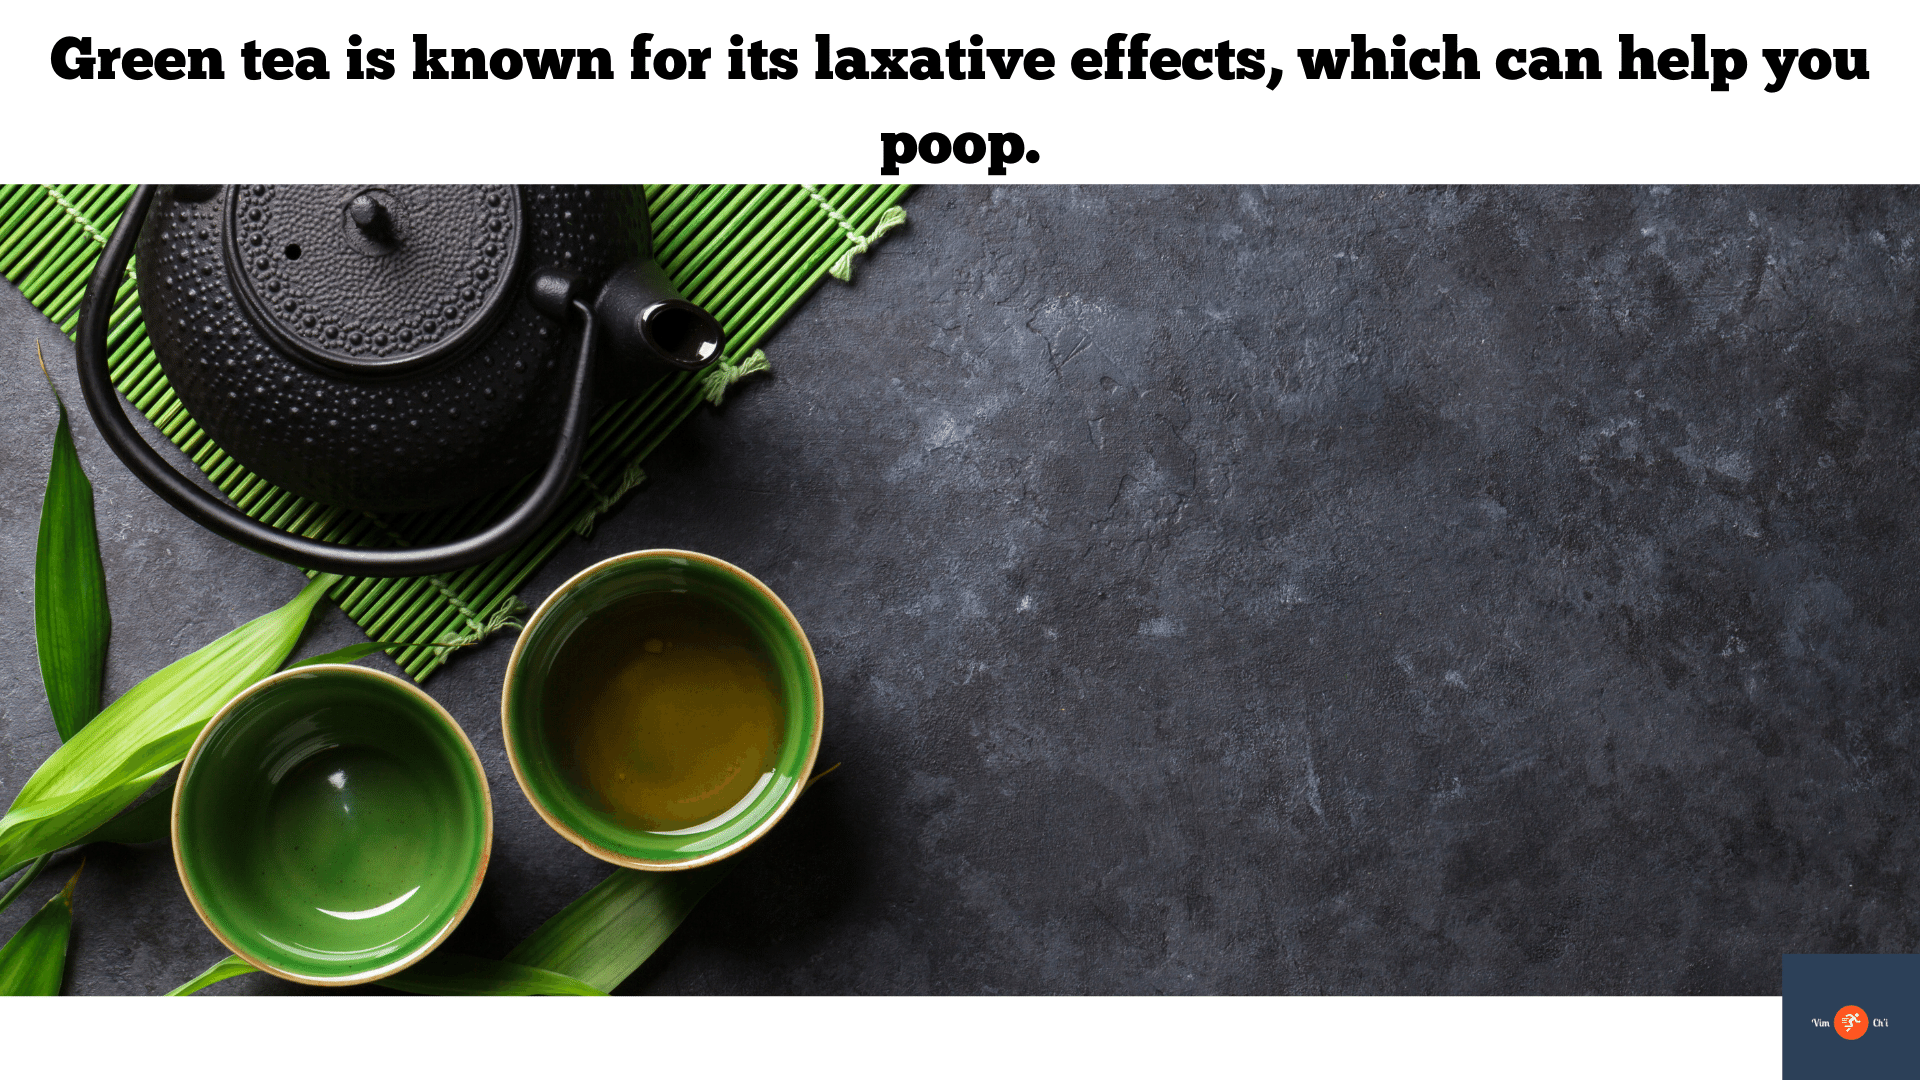 green tea can make you poop